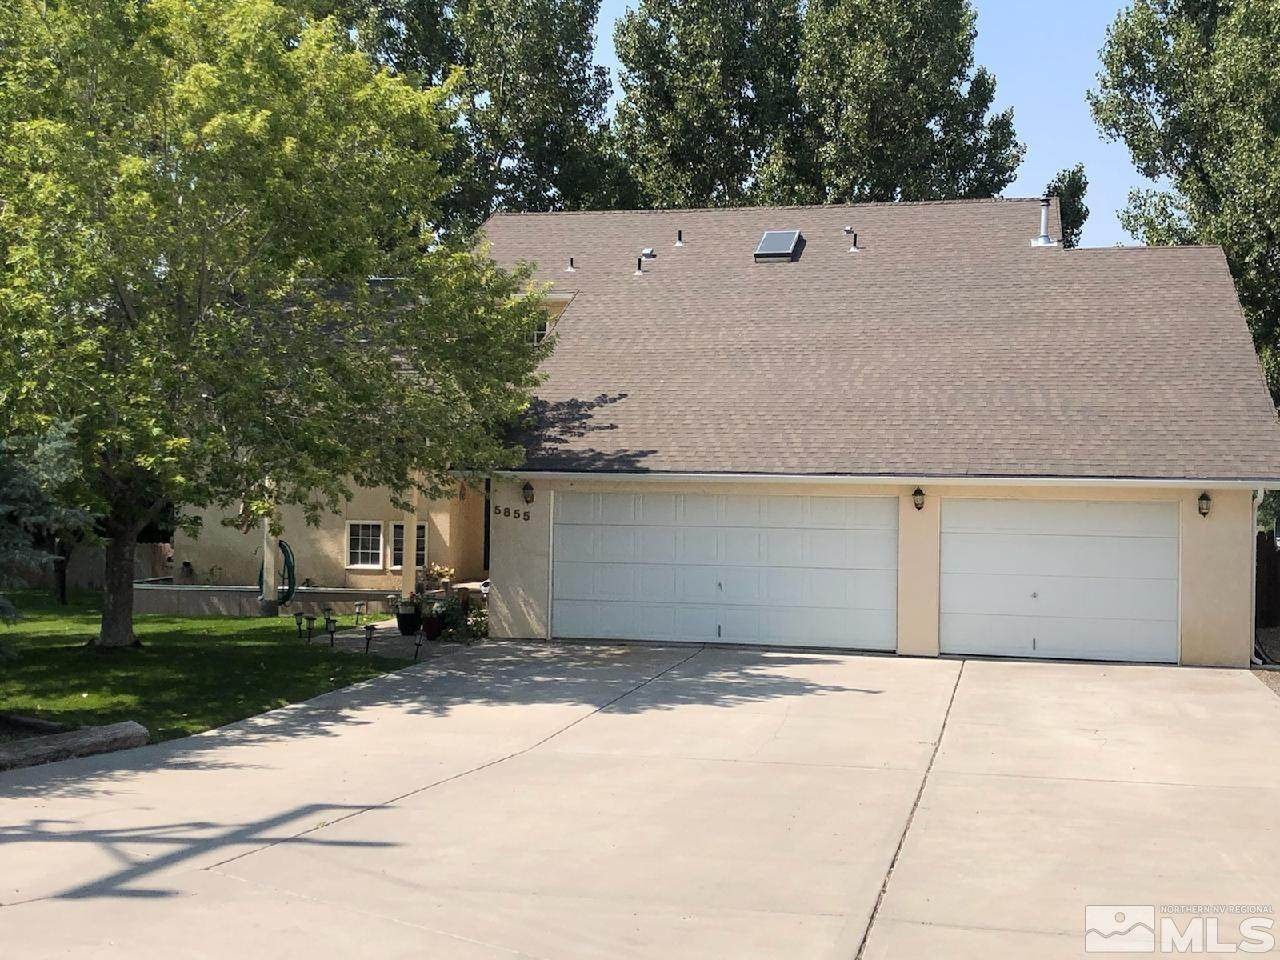 5855 Kluncy Canyon Rd - Photo 1